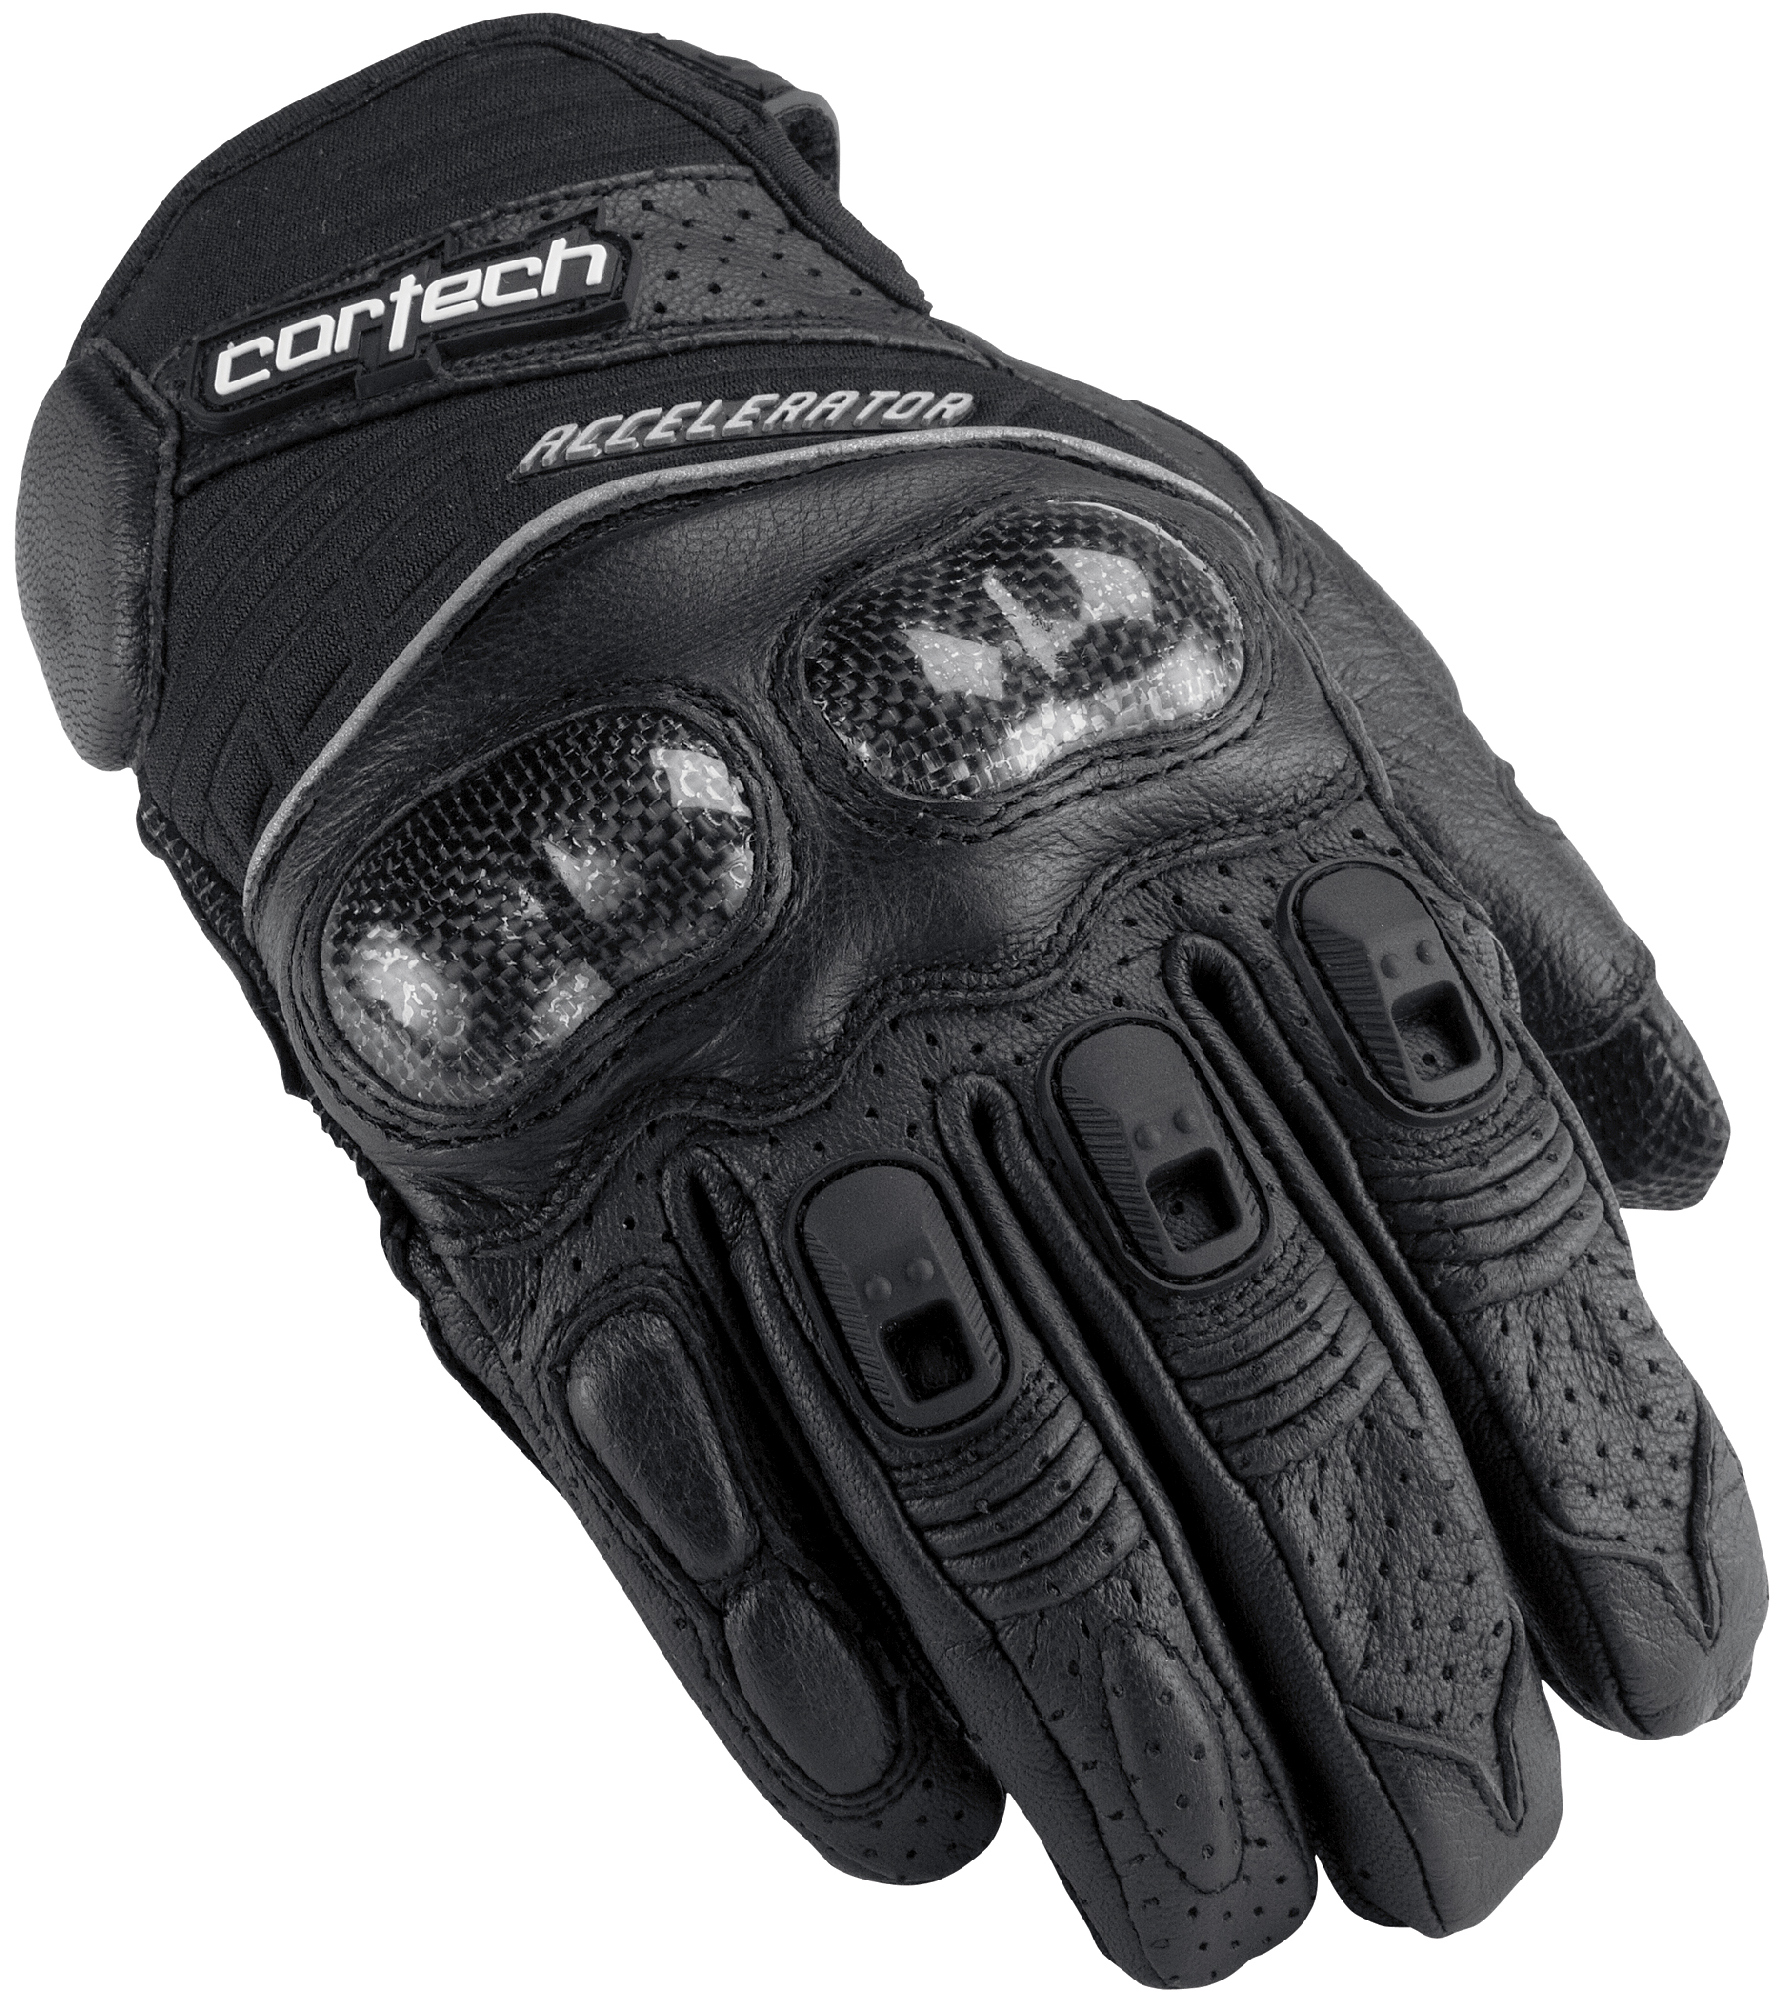 Mens black leather gloves xl - Cortech Black Mens Xl Accelerator Series 3 Leather Motorcycle Gloves Extra Large